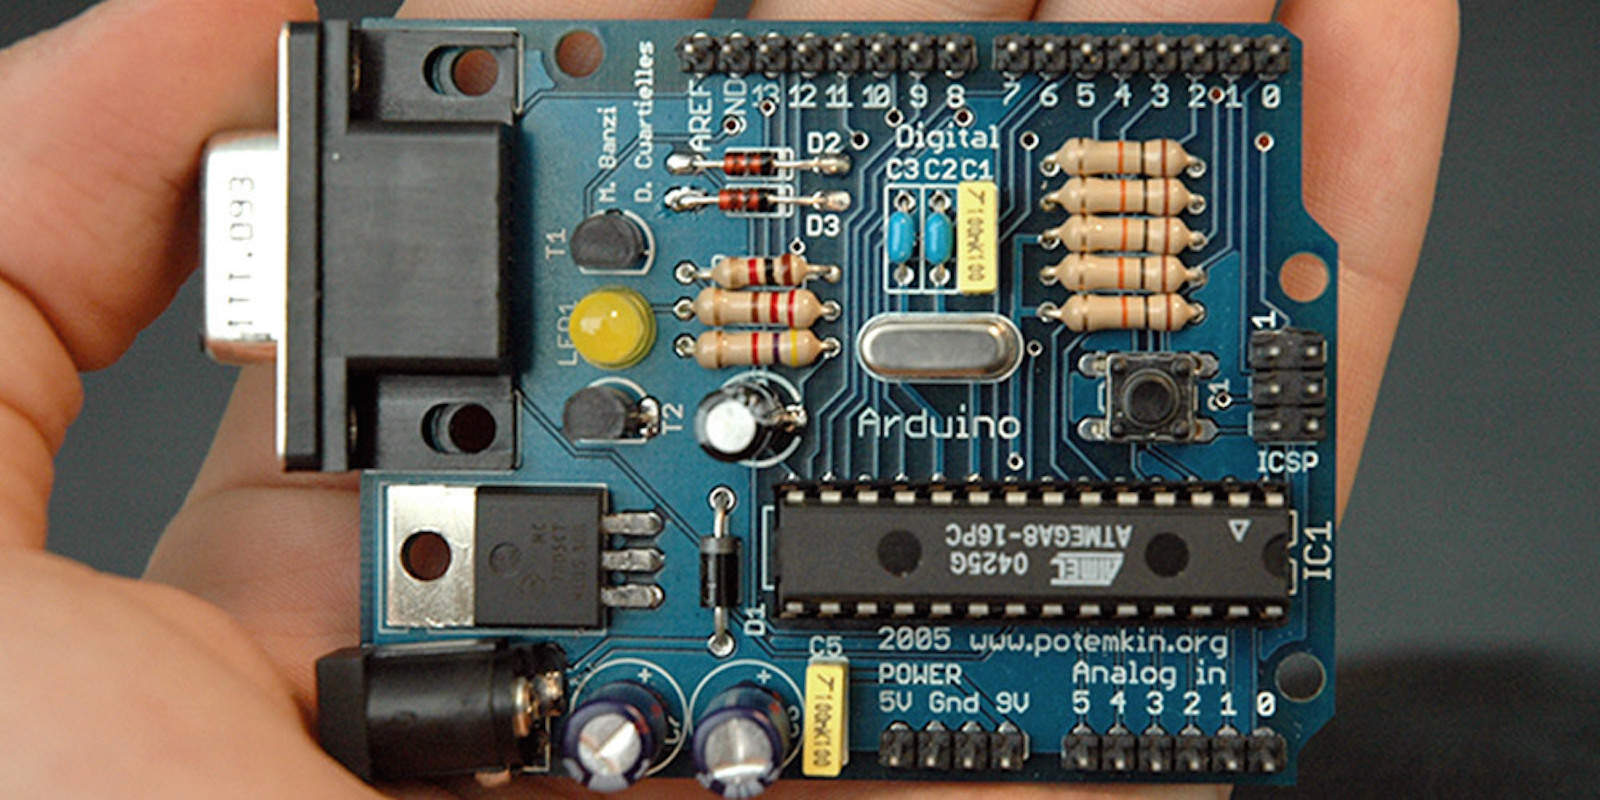 Get the tools and the knowledge you need to build anything you can imagine with Arduino.